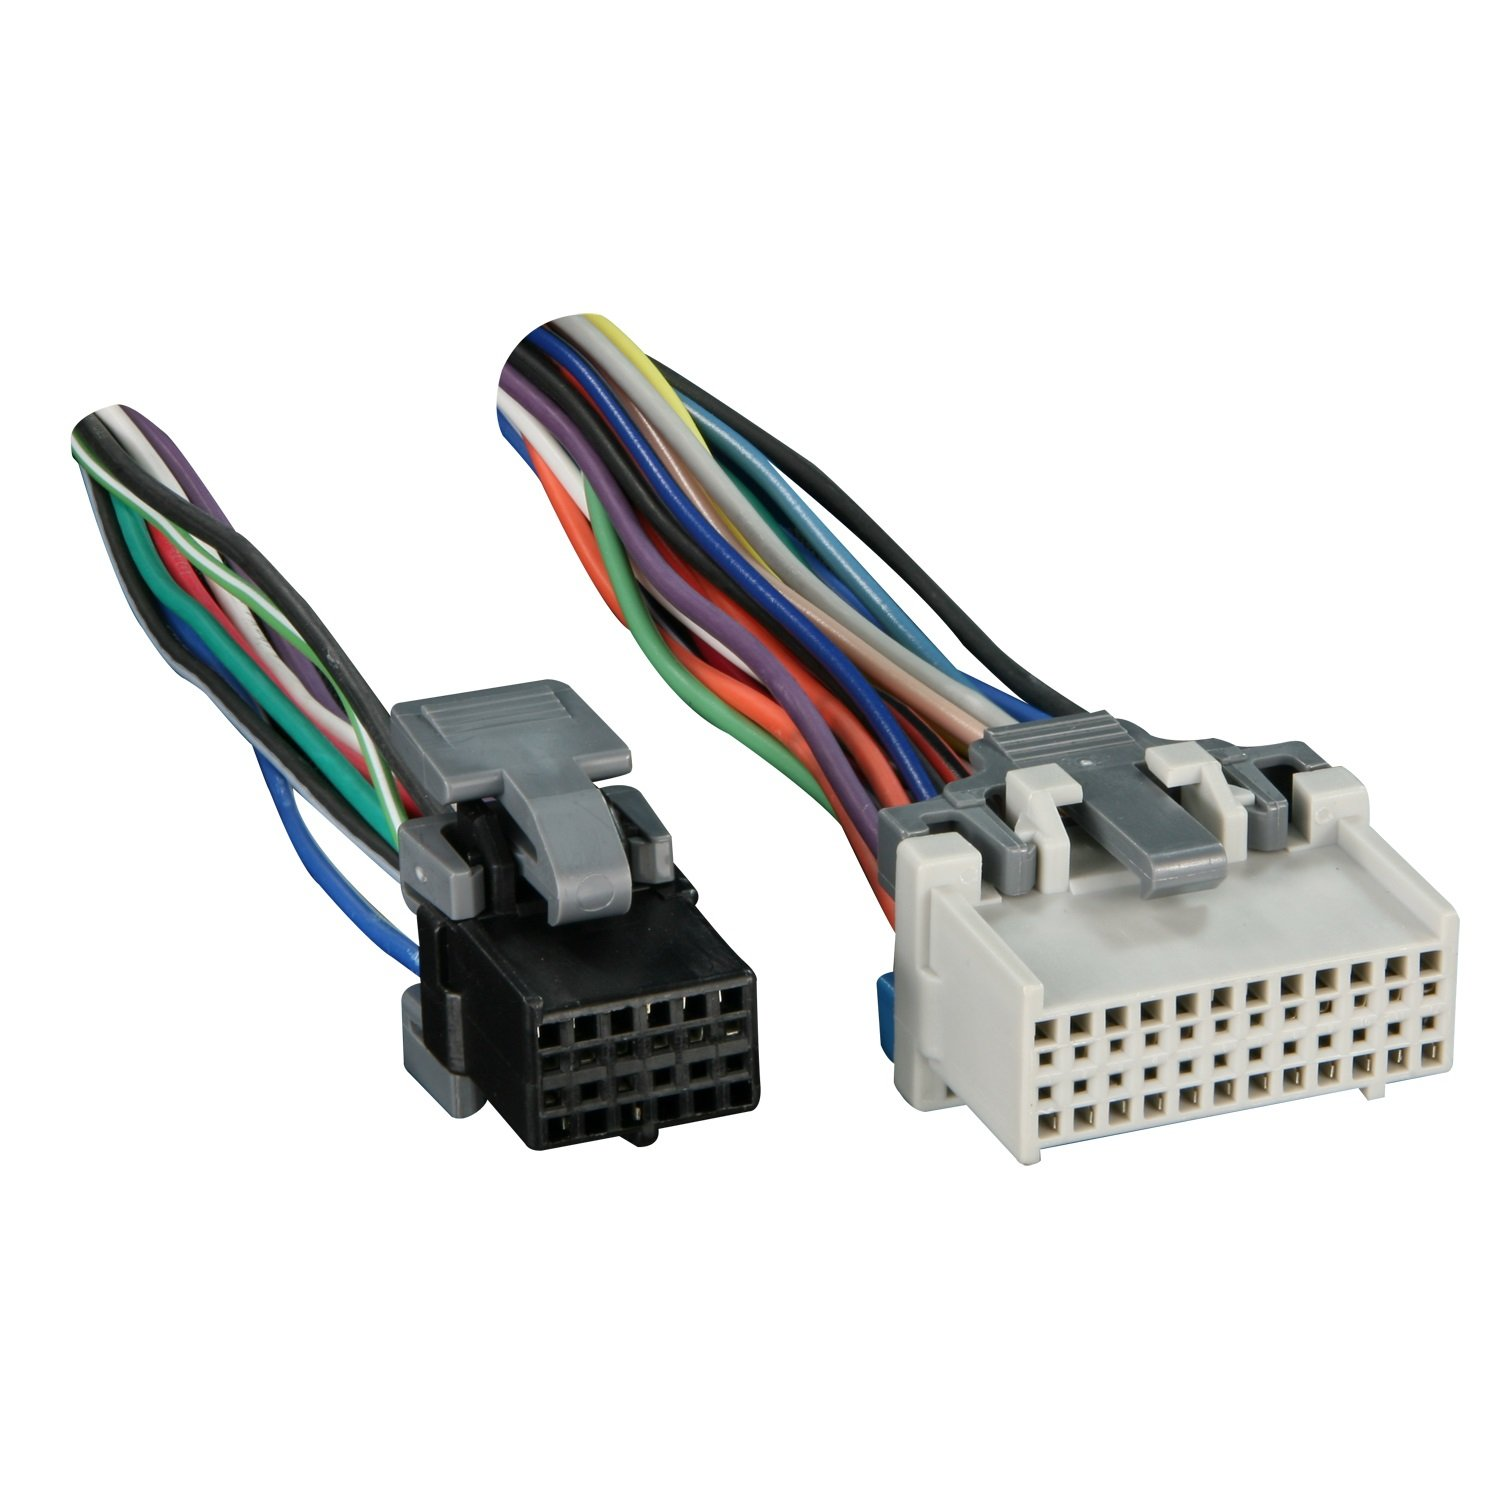 711log4bdML._SL1500_ amazon com metra turbowires 71 2003 1 wiring harness car electronics  at mifinder.co